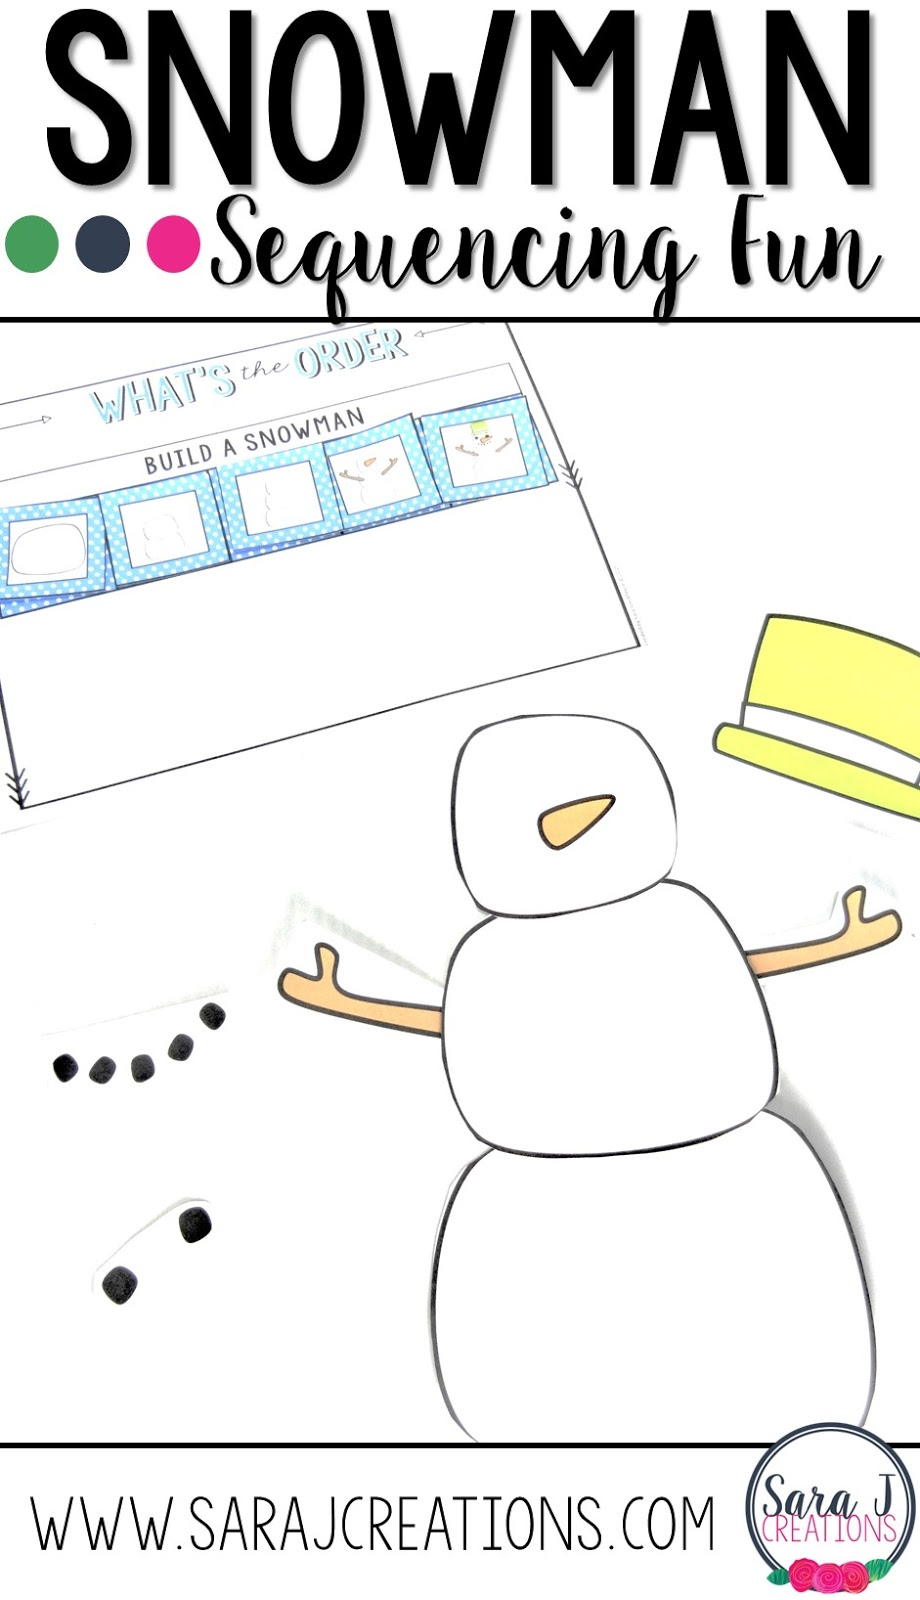 Cute ideas for teaching preschoolers how to build a snowman.  A great way to practice sequencing skills.